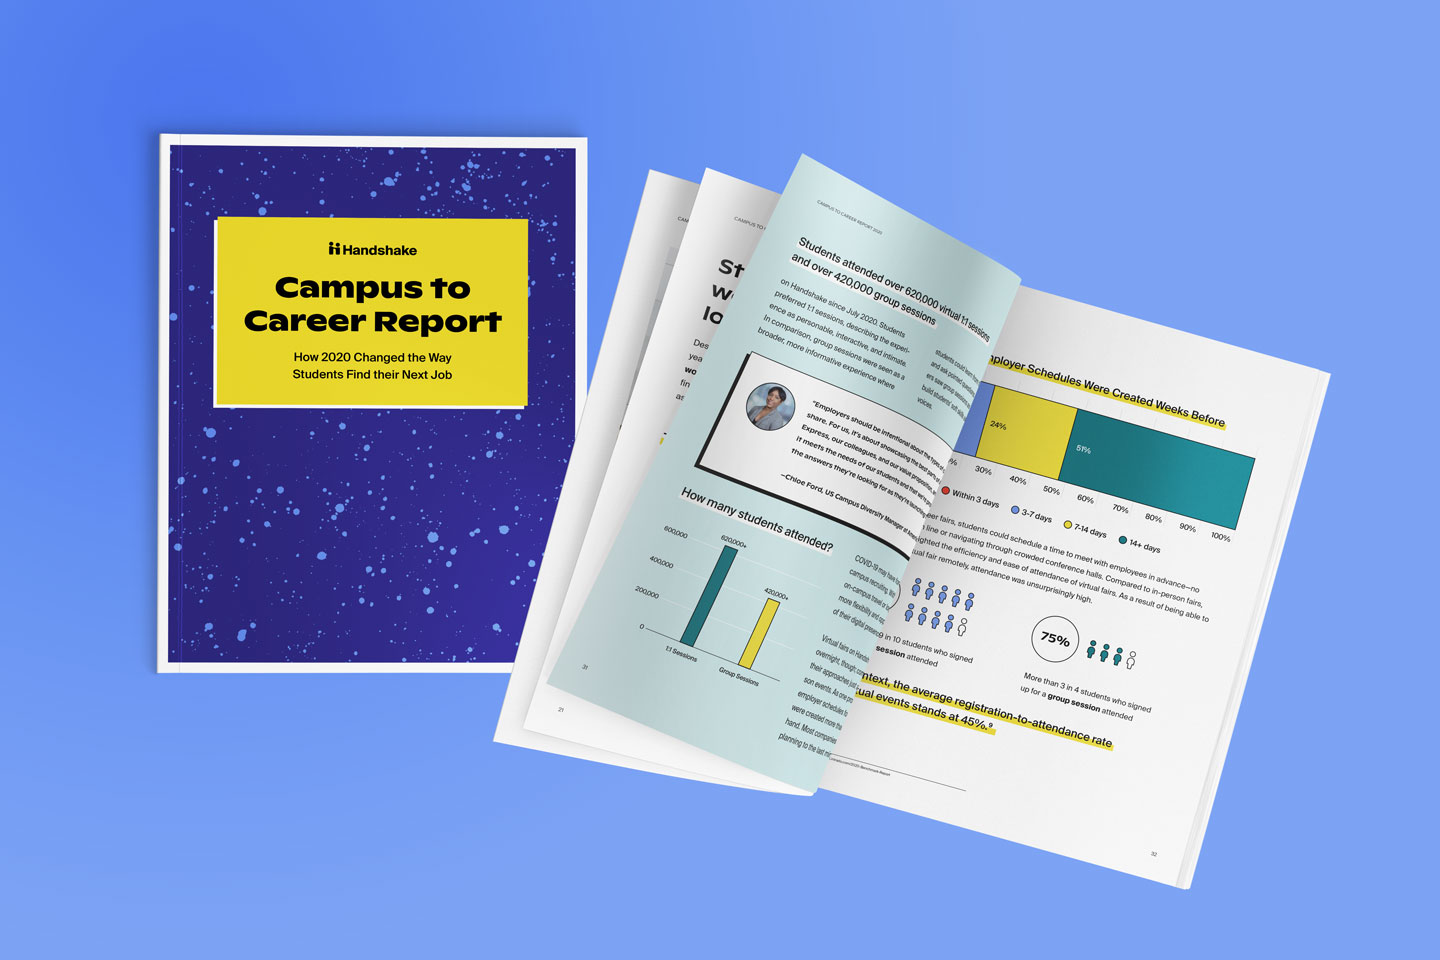 Handshake's 2020 Campus to Career Report